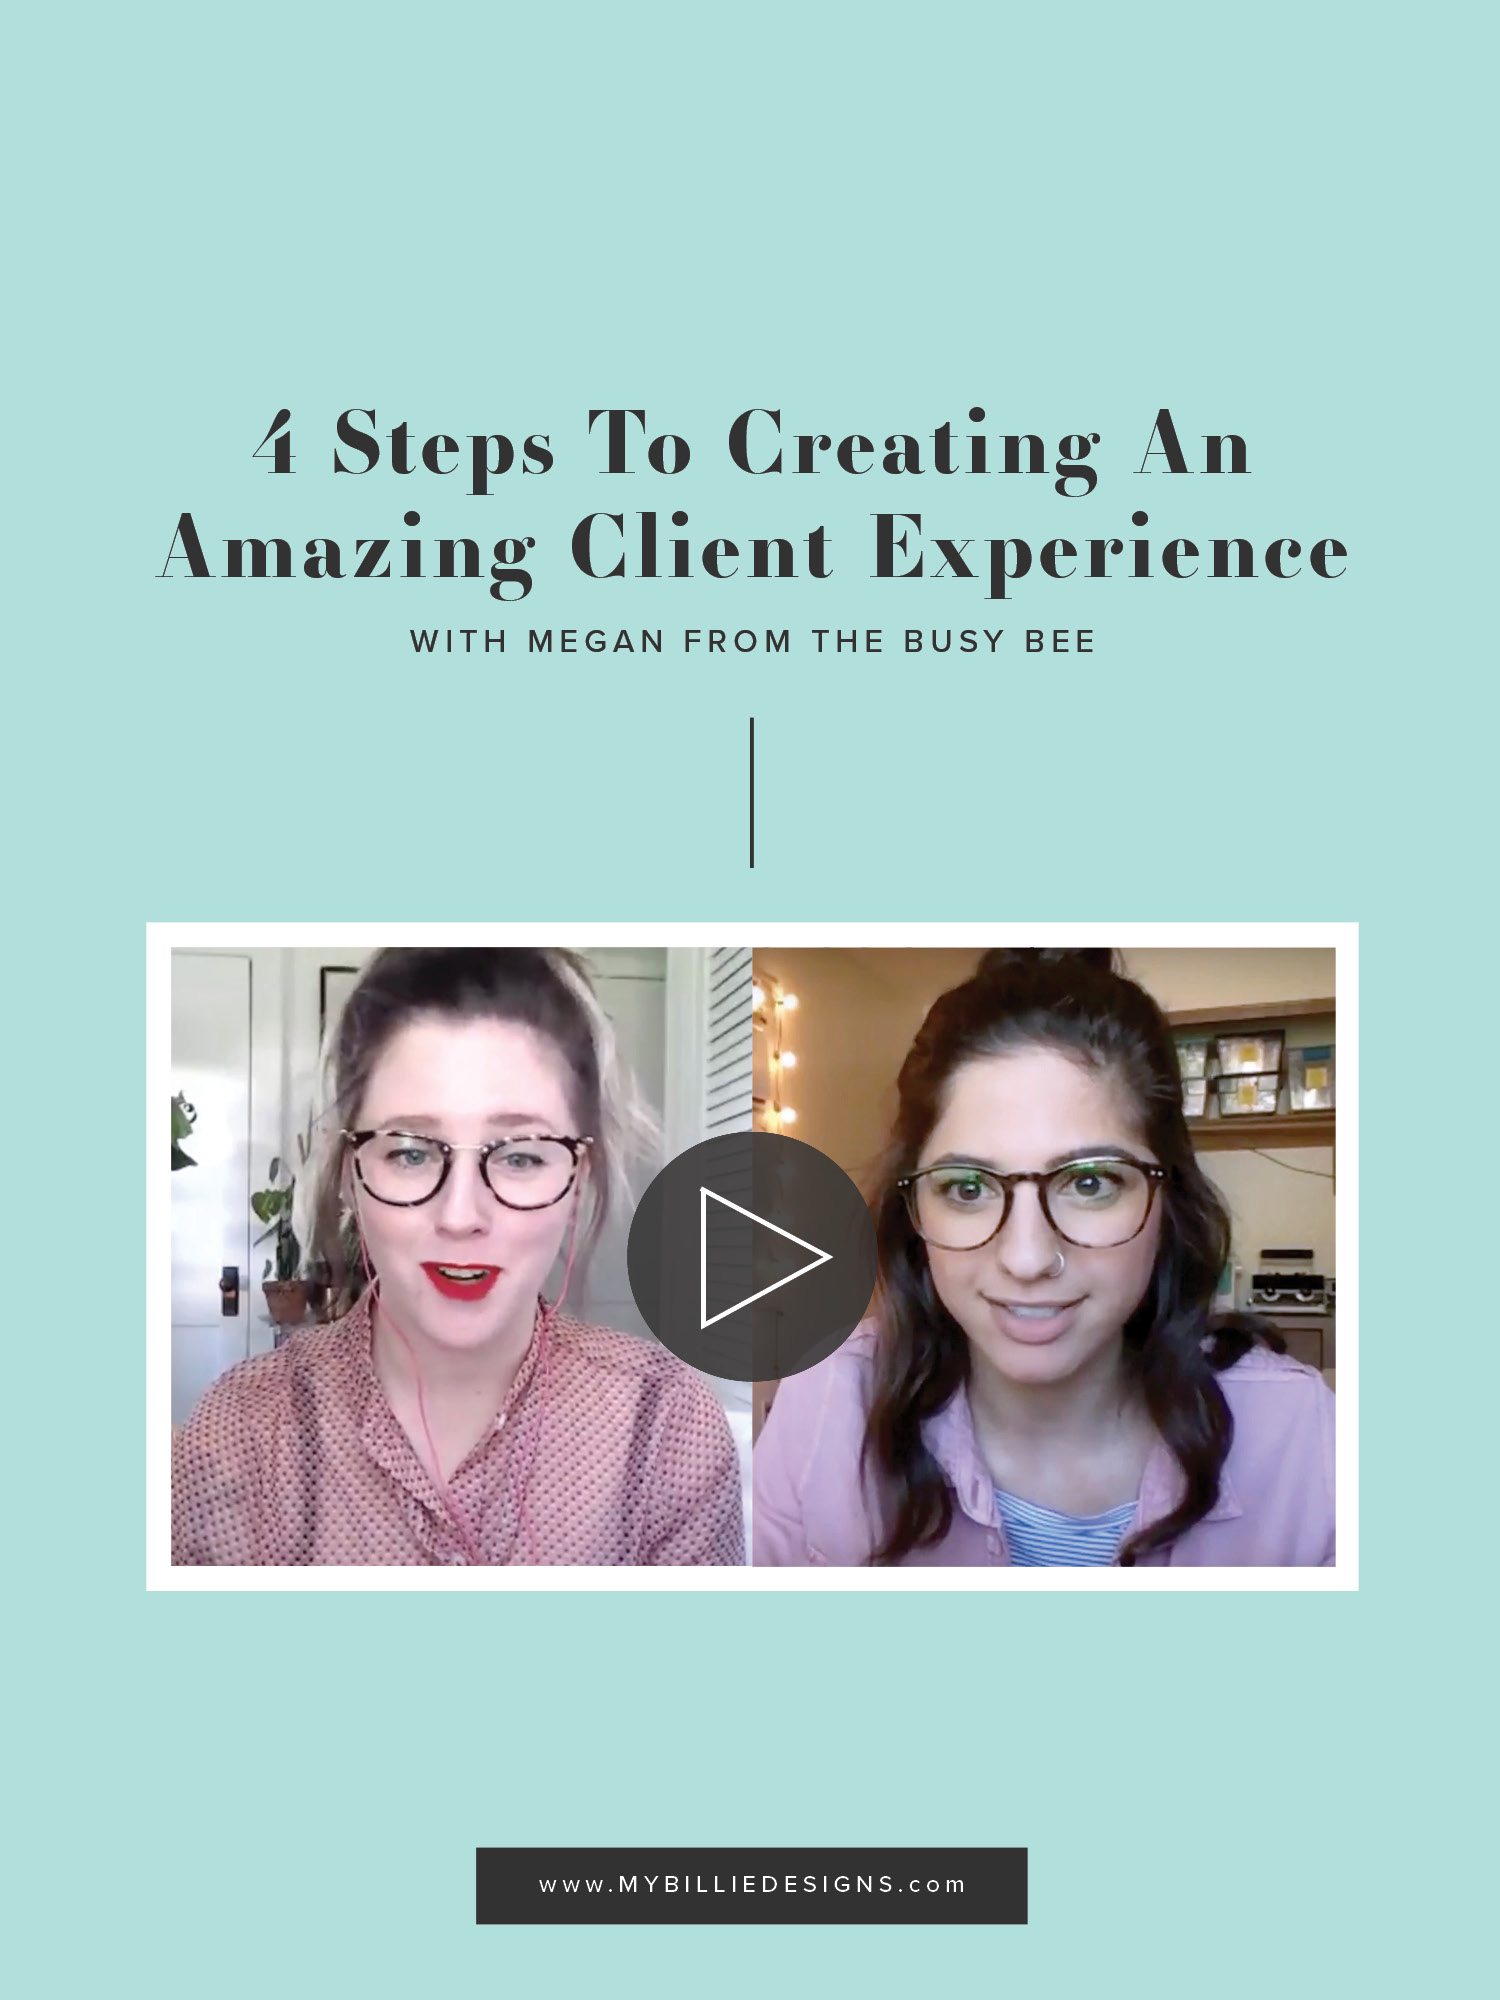 4 Steps To Creating An Amazing Client Experience